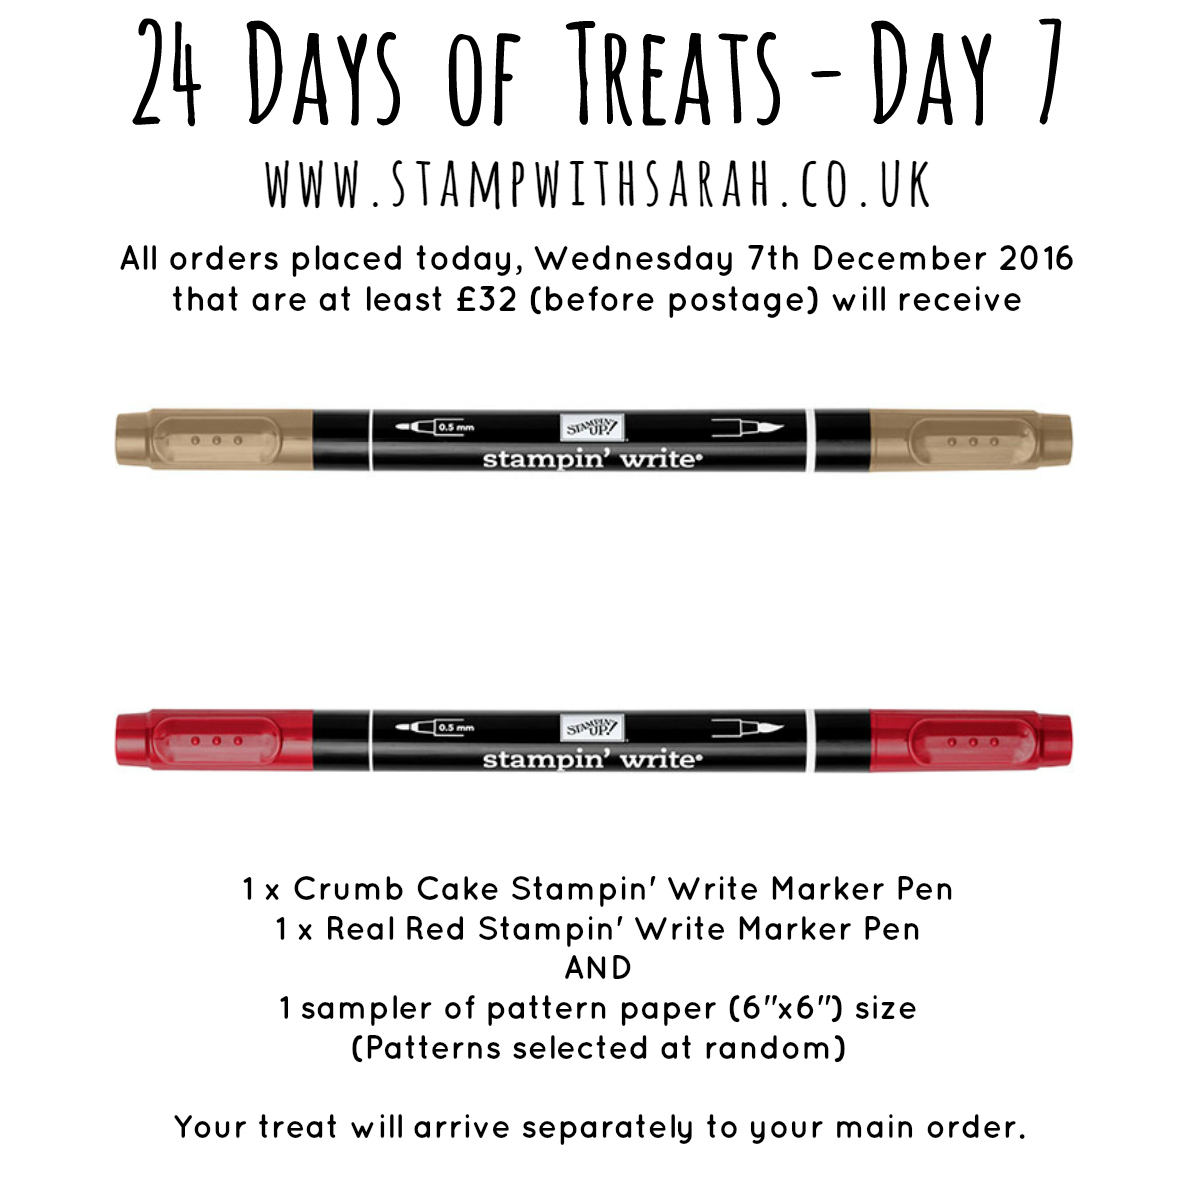 24-days-of-treats-day-7